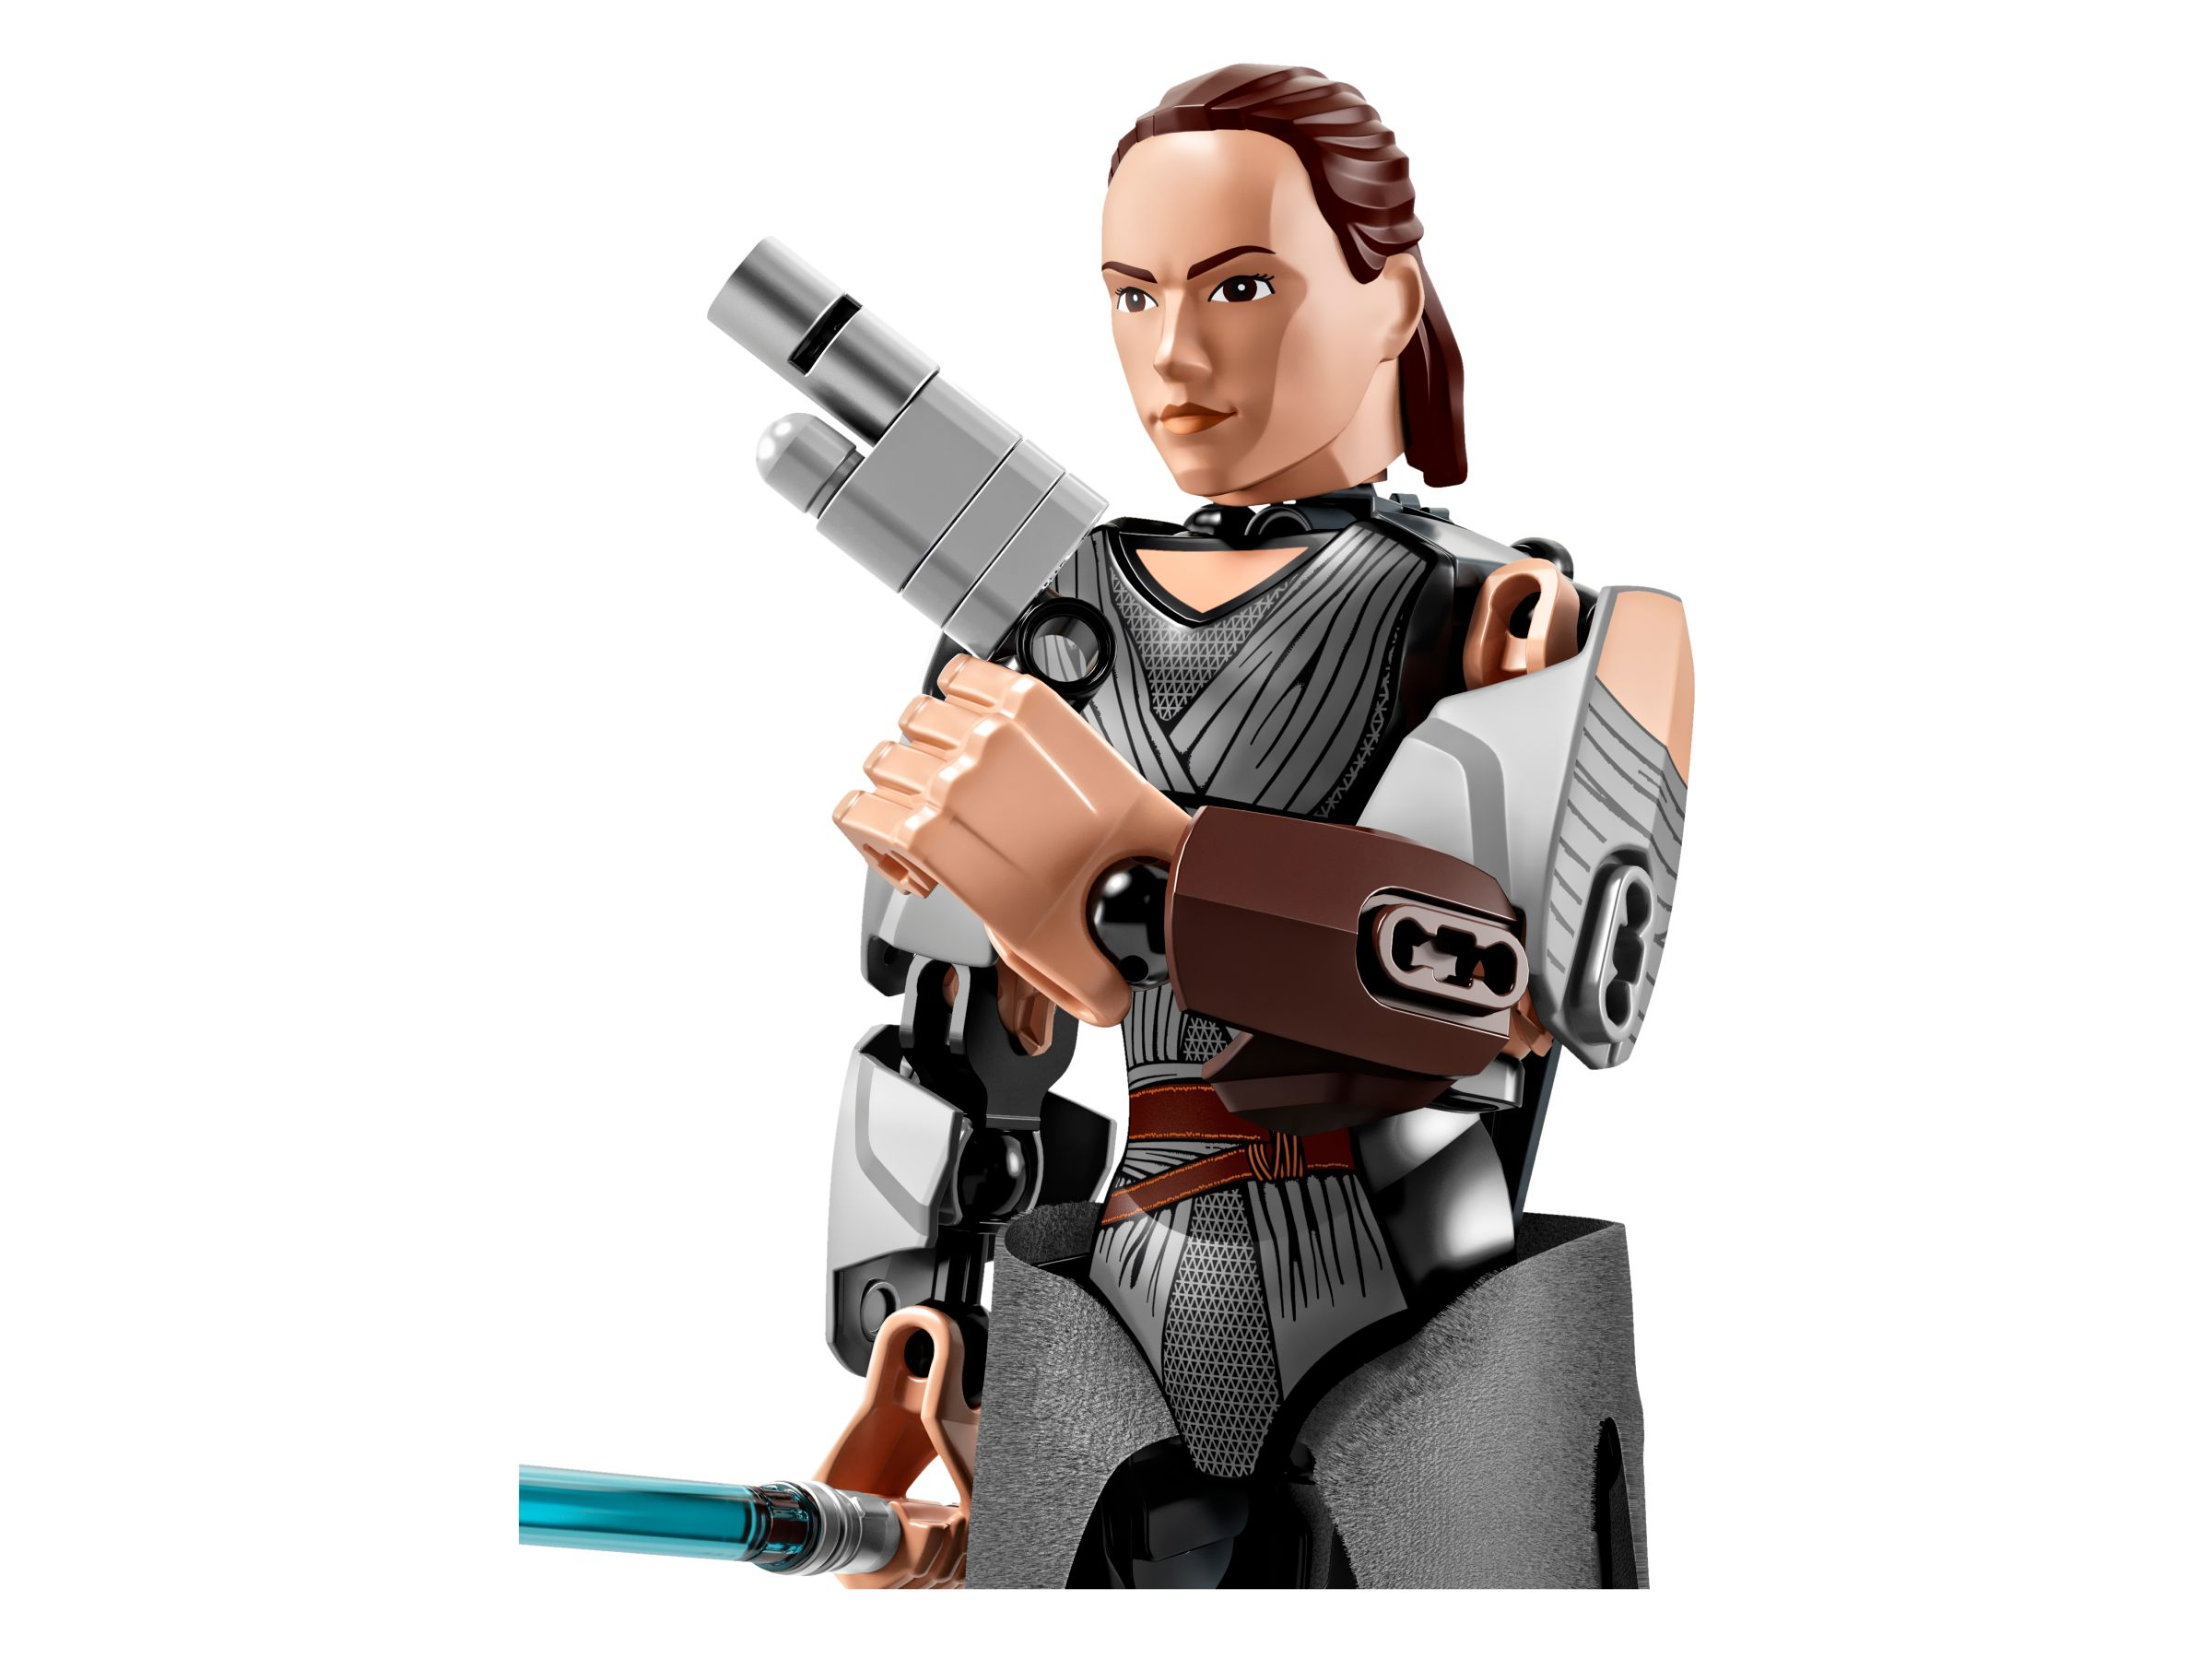 LEGO Star Wars Buildable Figures 75528 Rey LEGO_75528_alt3.jpg